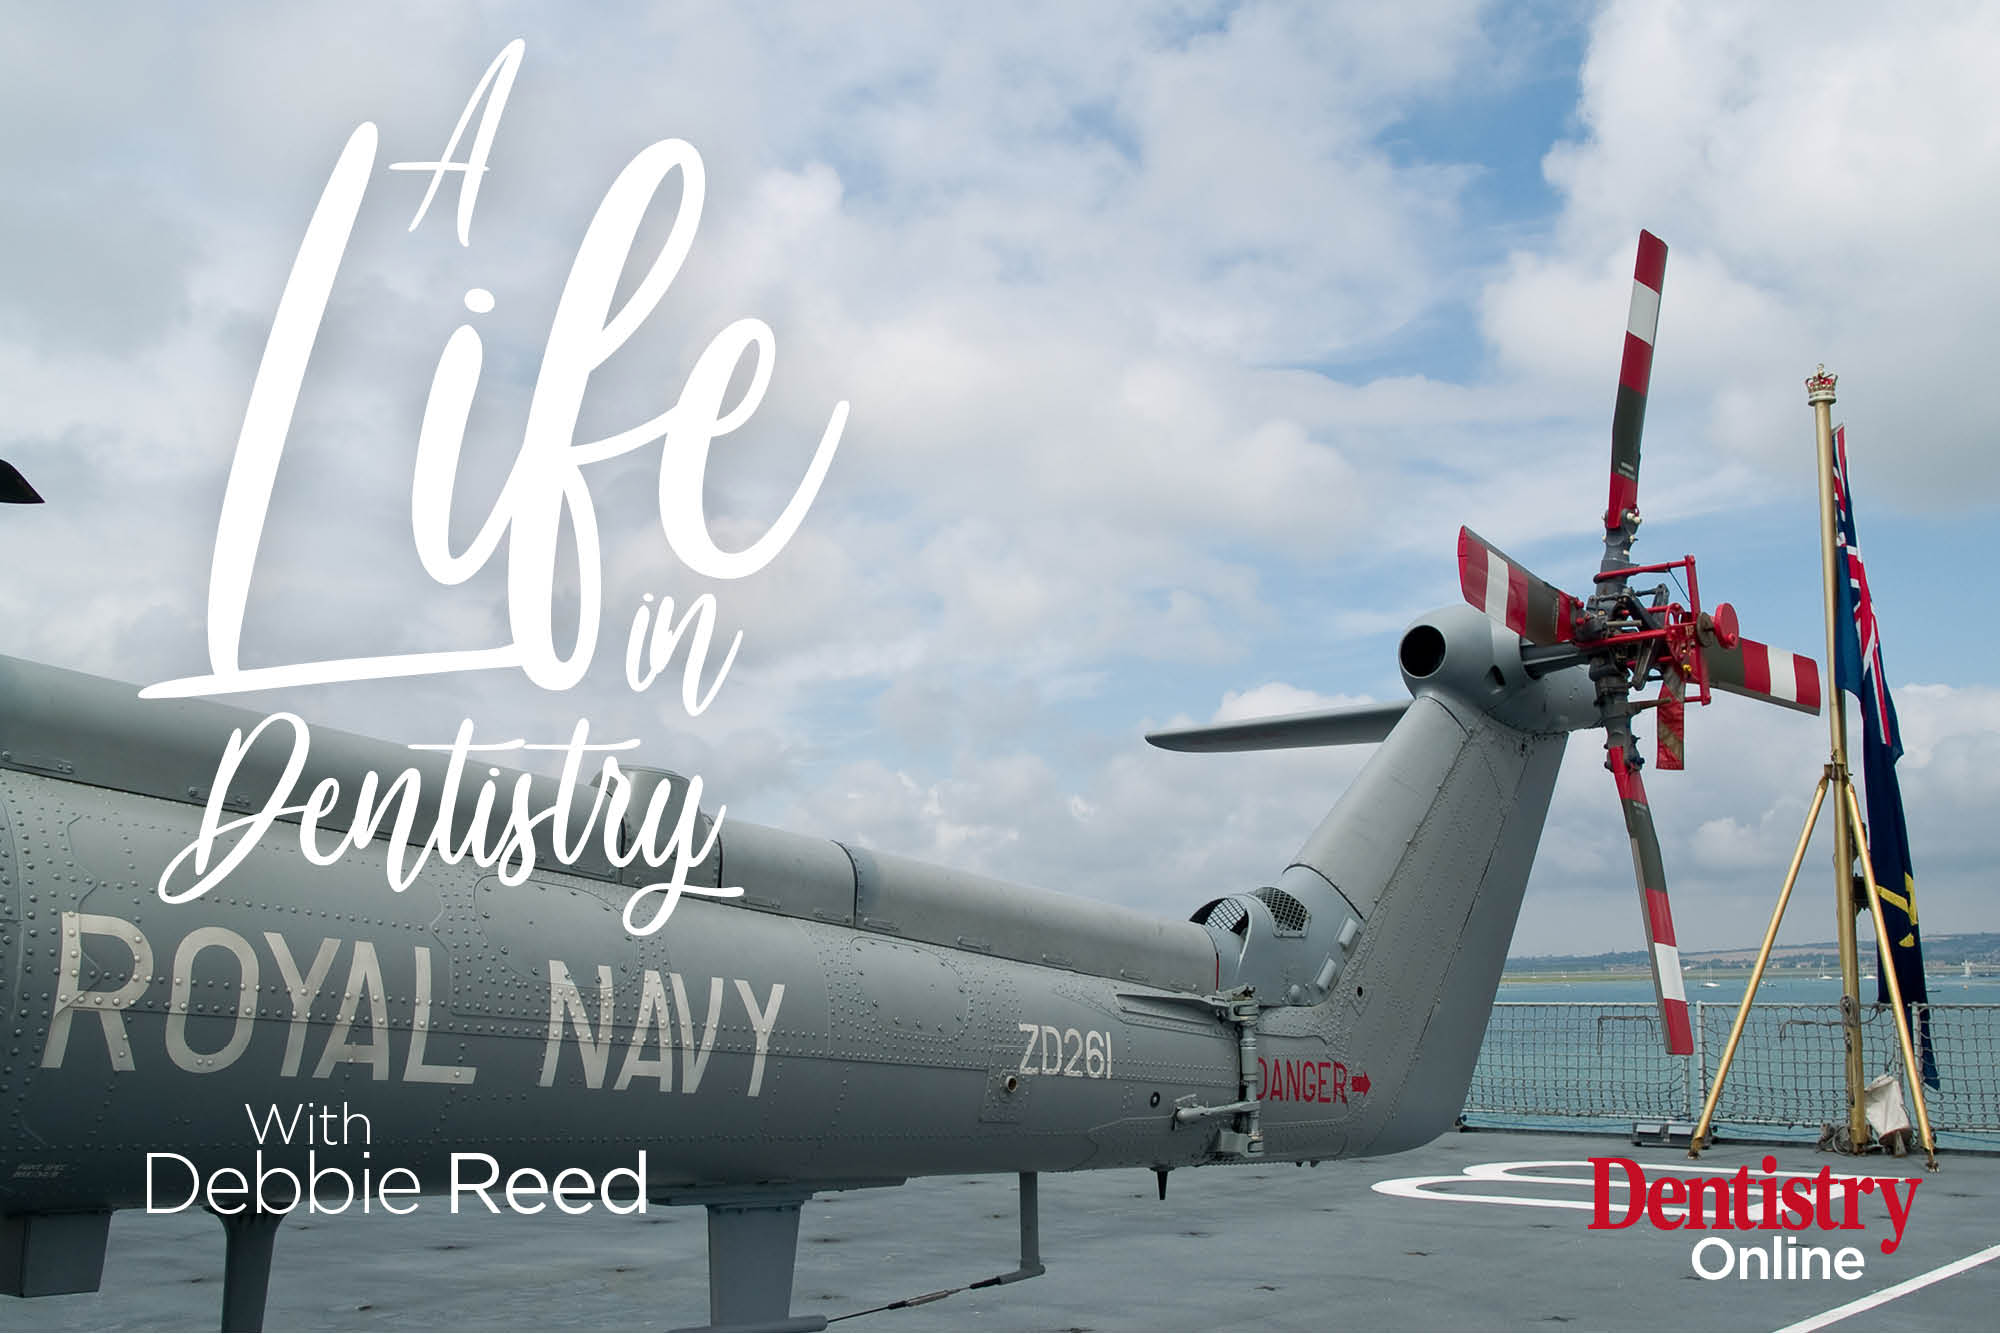 Debbie Reed opens up about her life-changing experiences training and working as a dental nurse in the Royal Navy